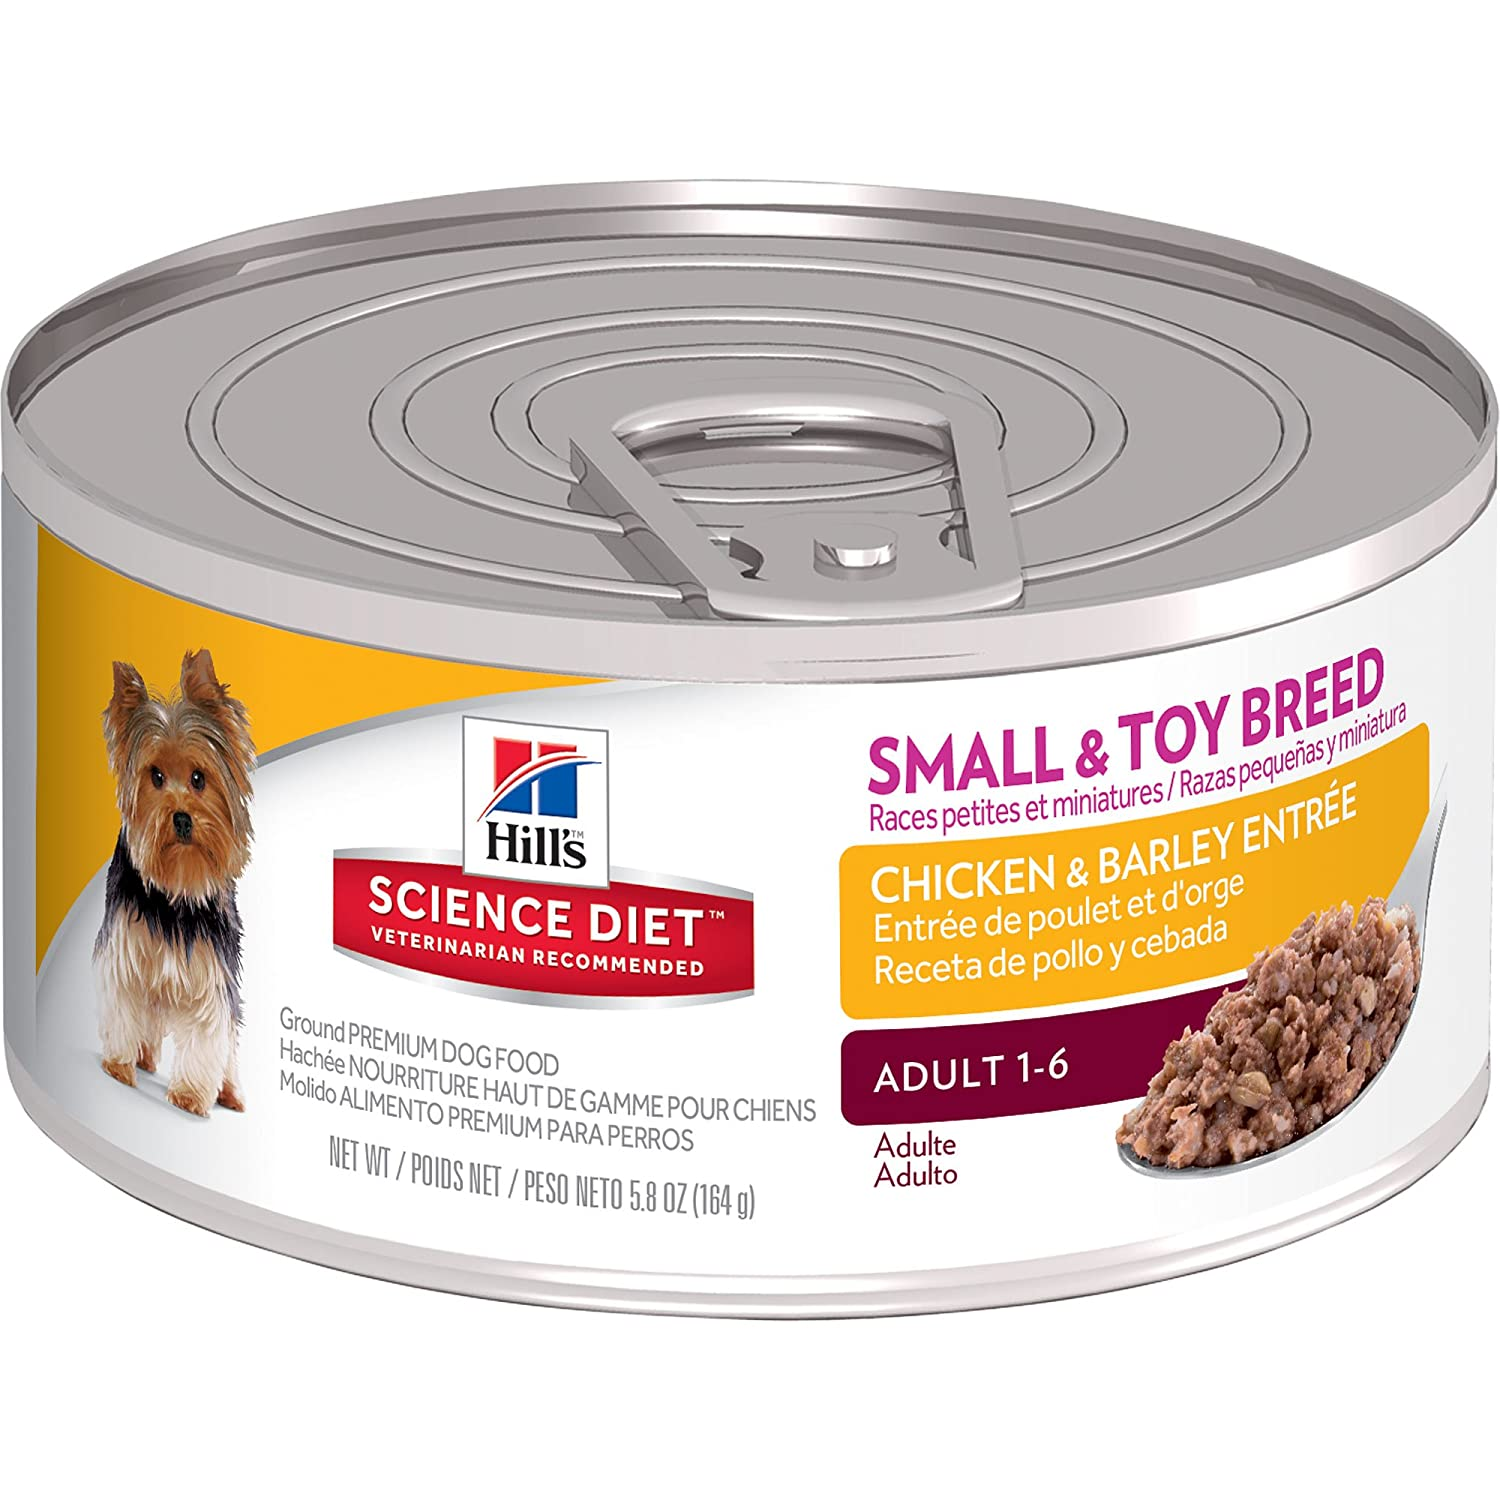 Best Dog Food For Shih Tzu We Rate 10 Top Quality Choices